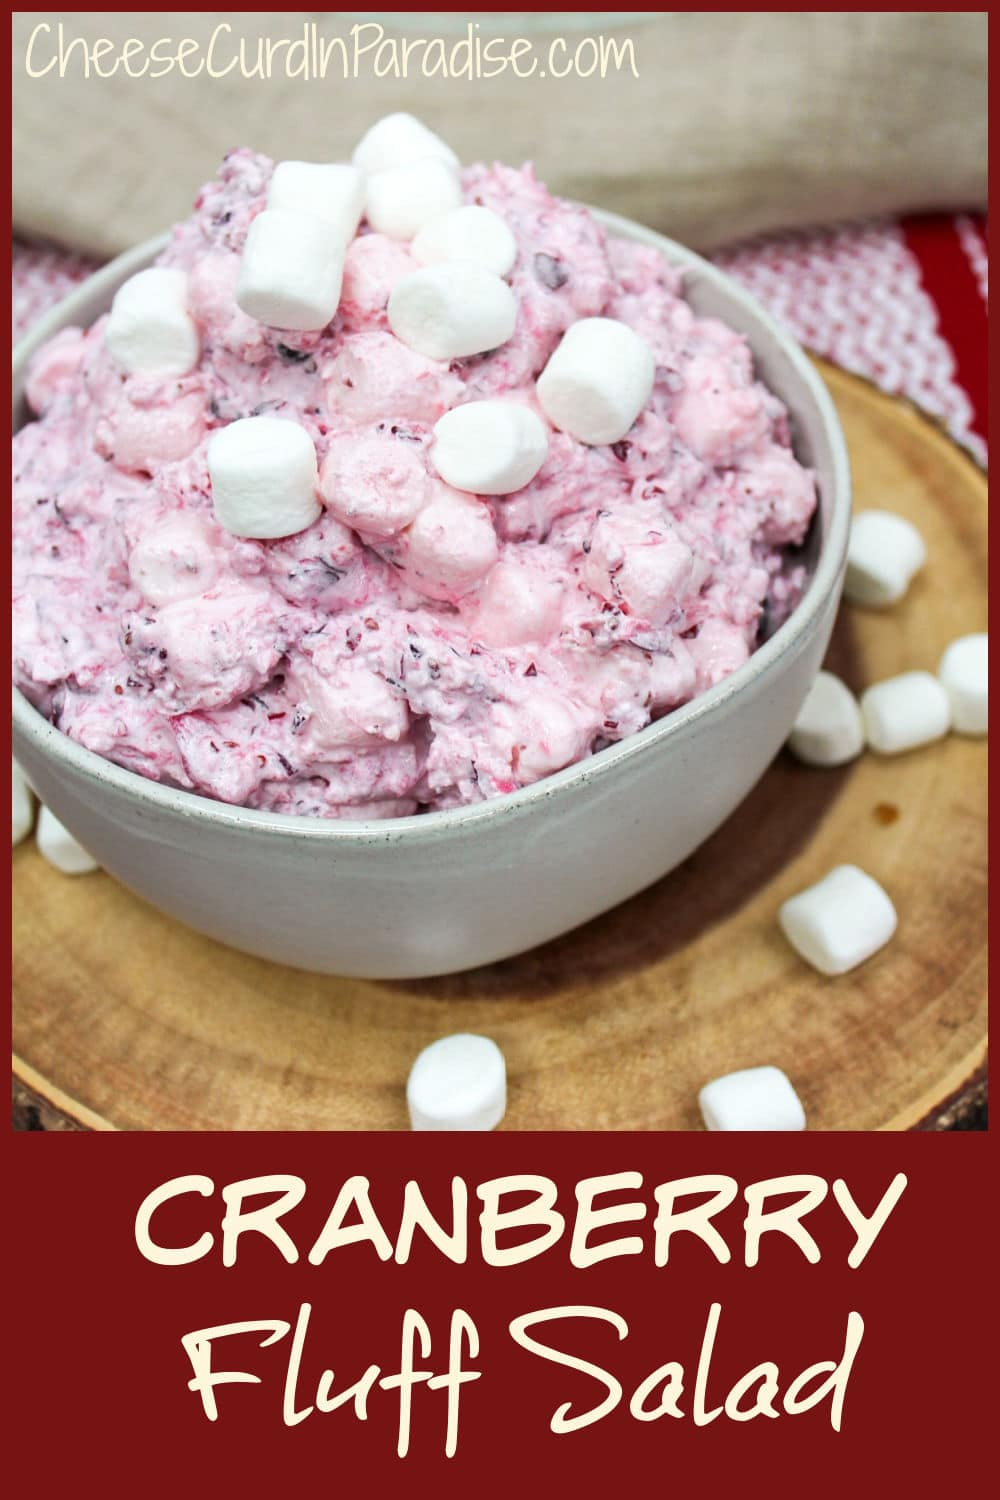 cranberry fluff salad in a bowl